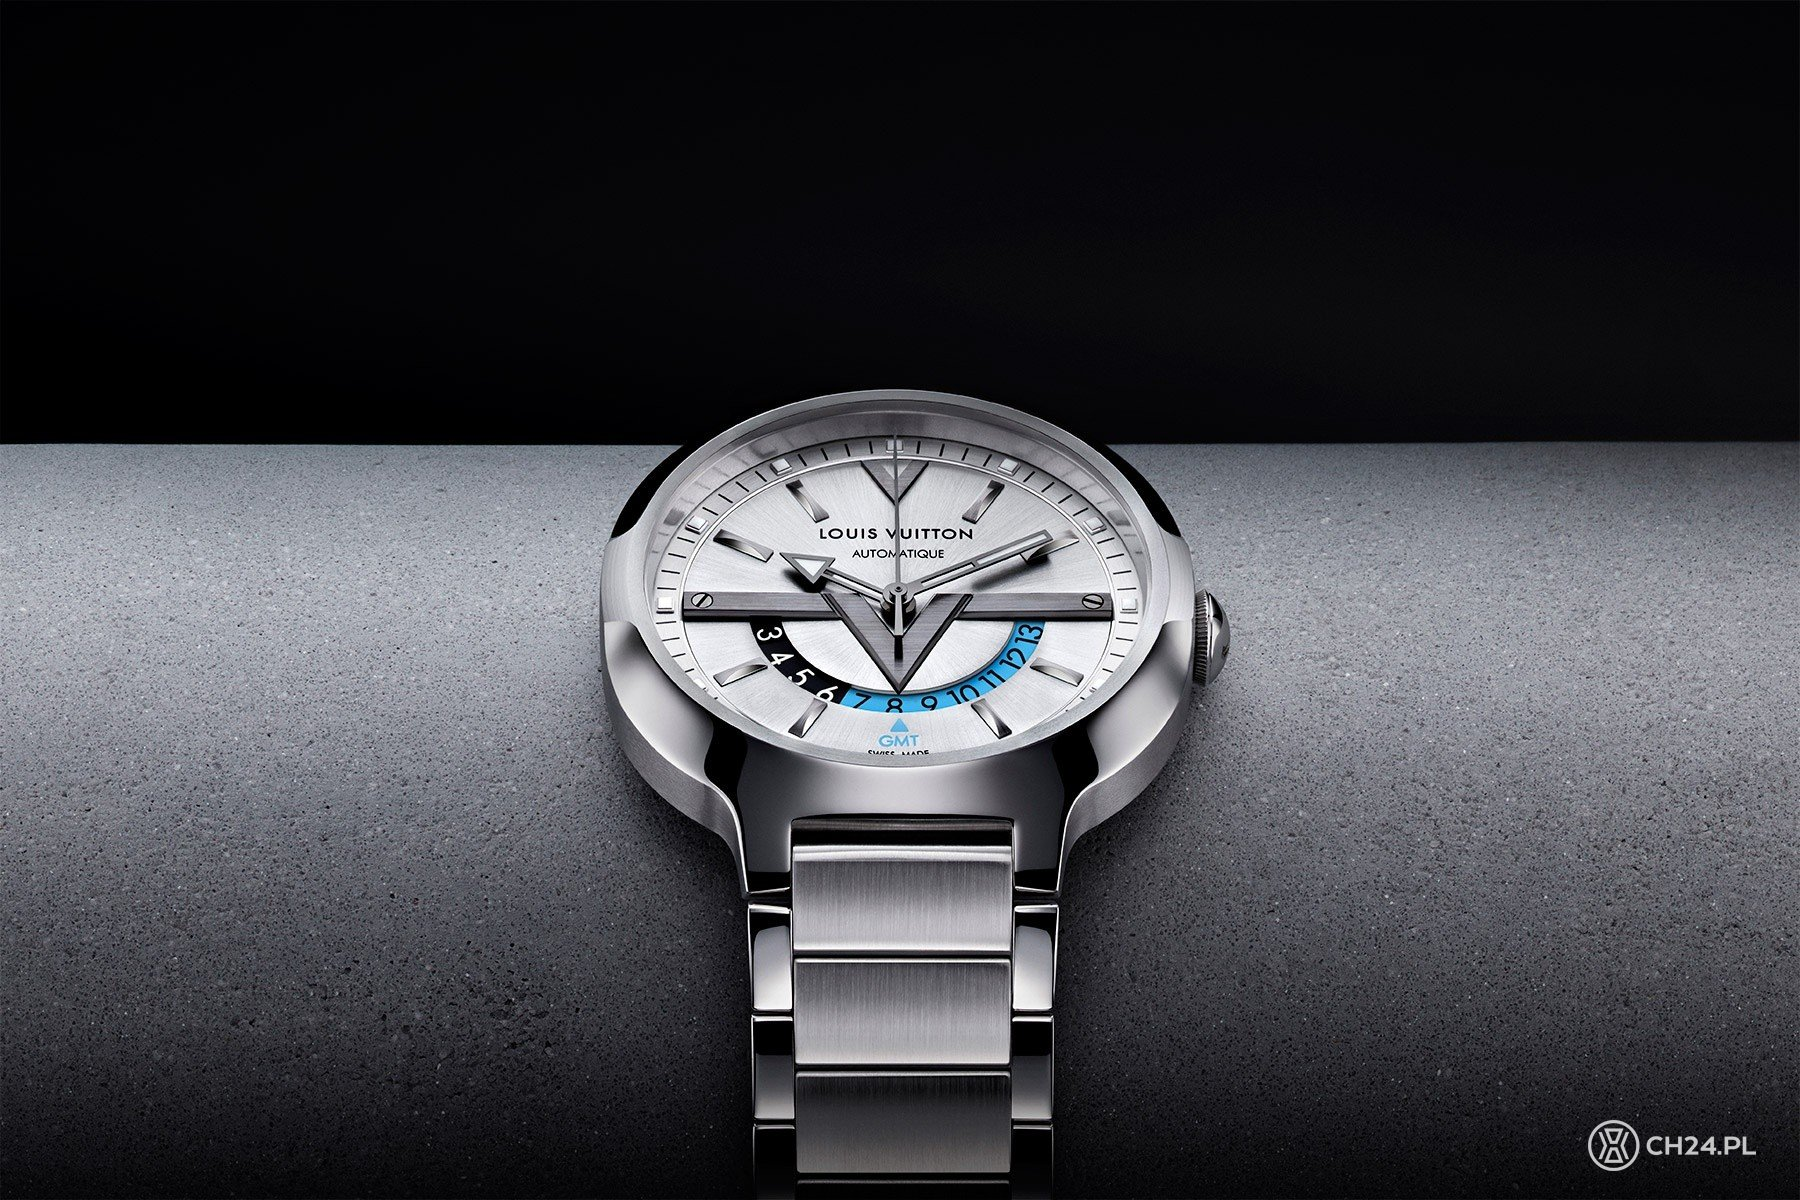 f6818251cfe90 Louis Vuitton Voyager GMT Automatic Dual Time Zone